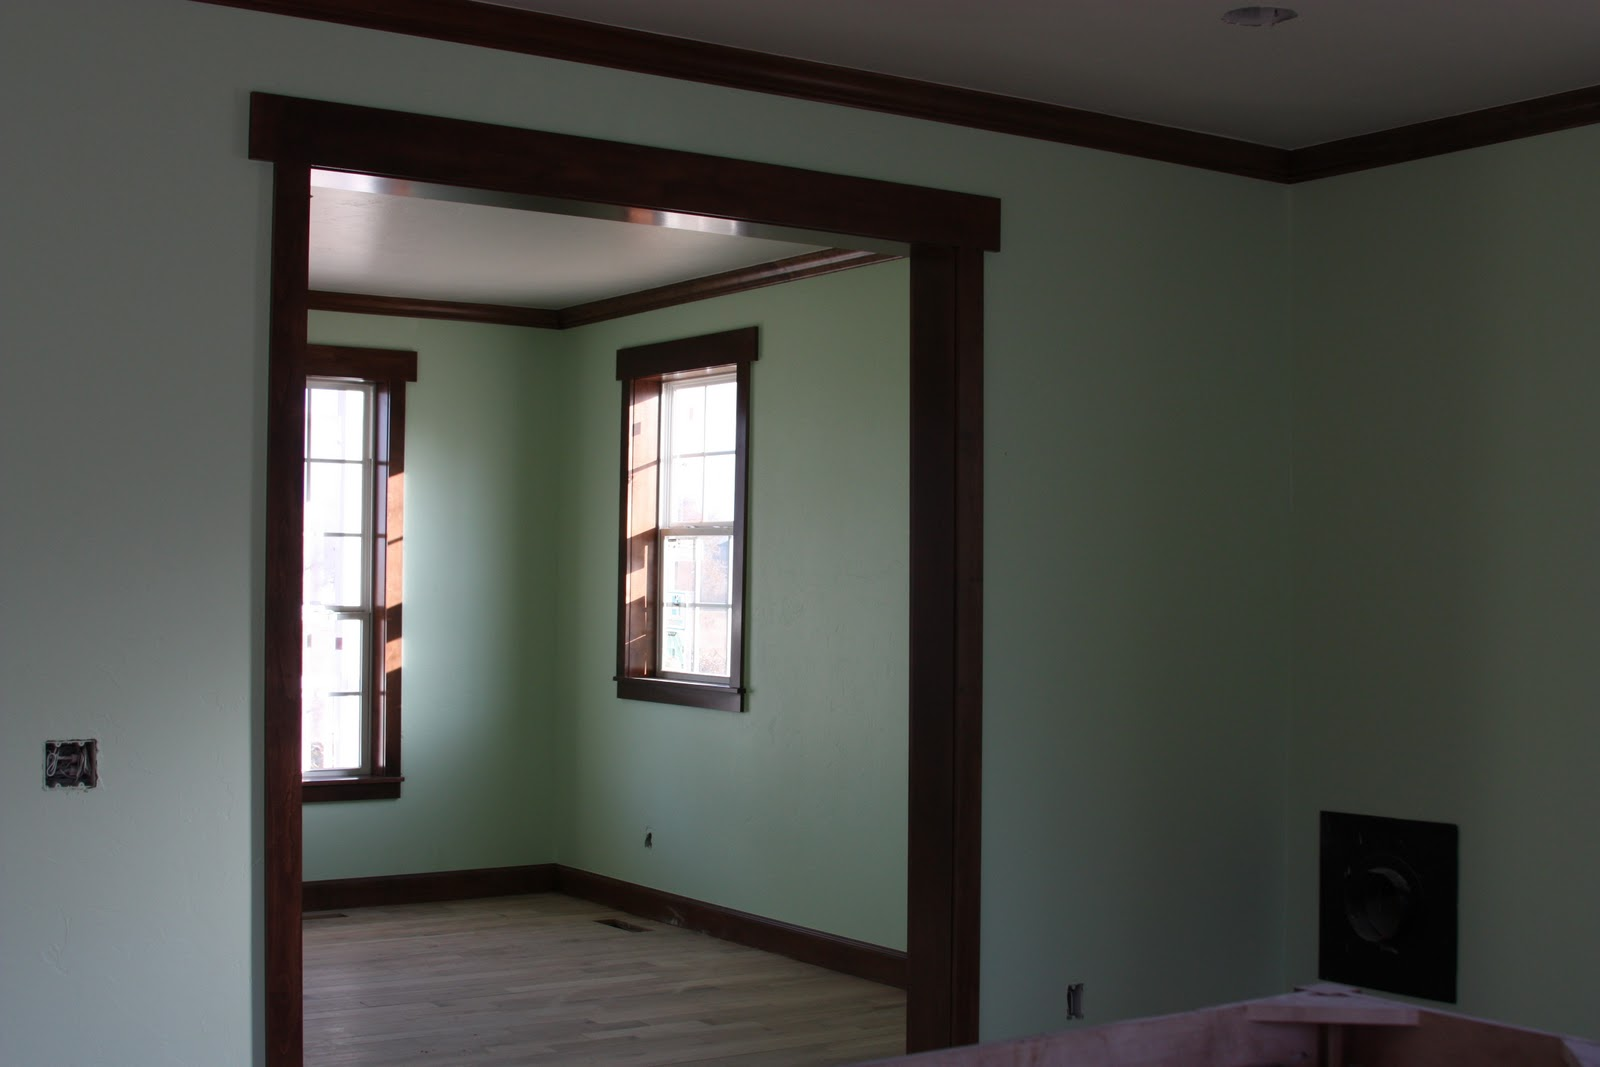 Paint Color with Dark Wood Trim in Room